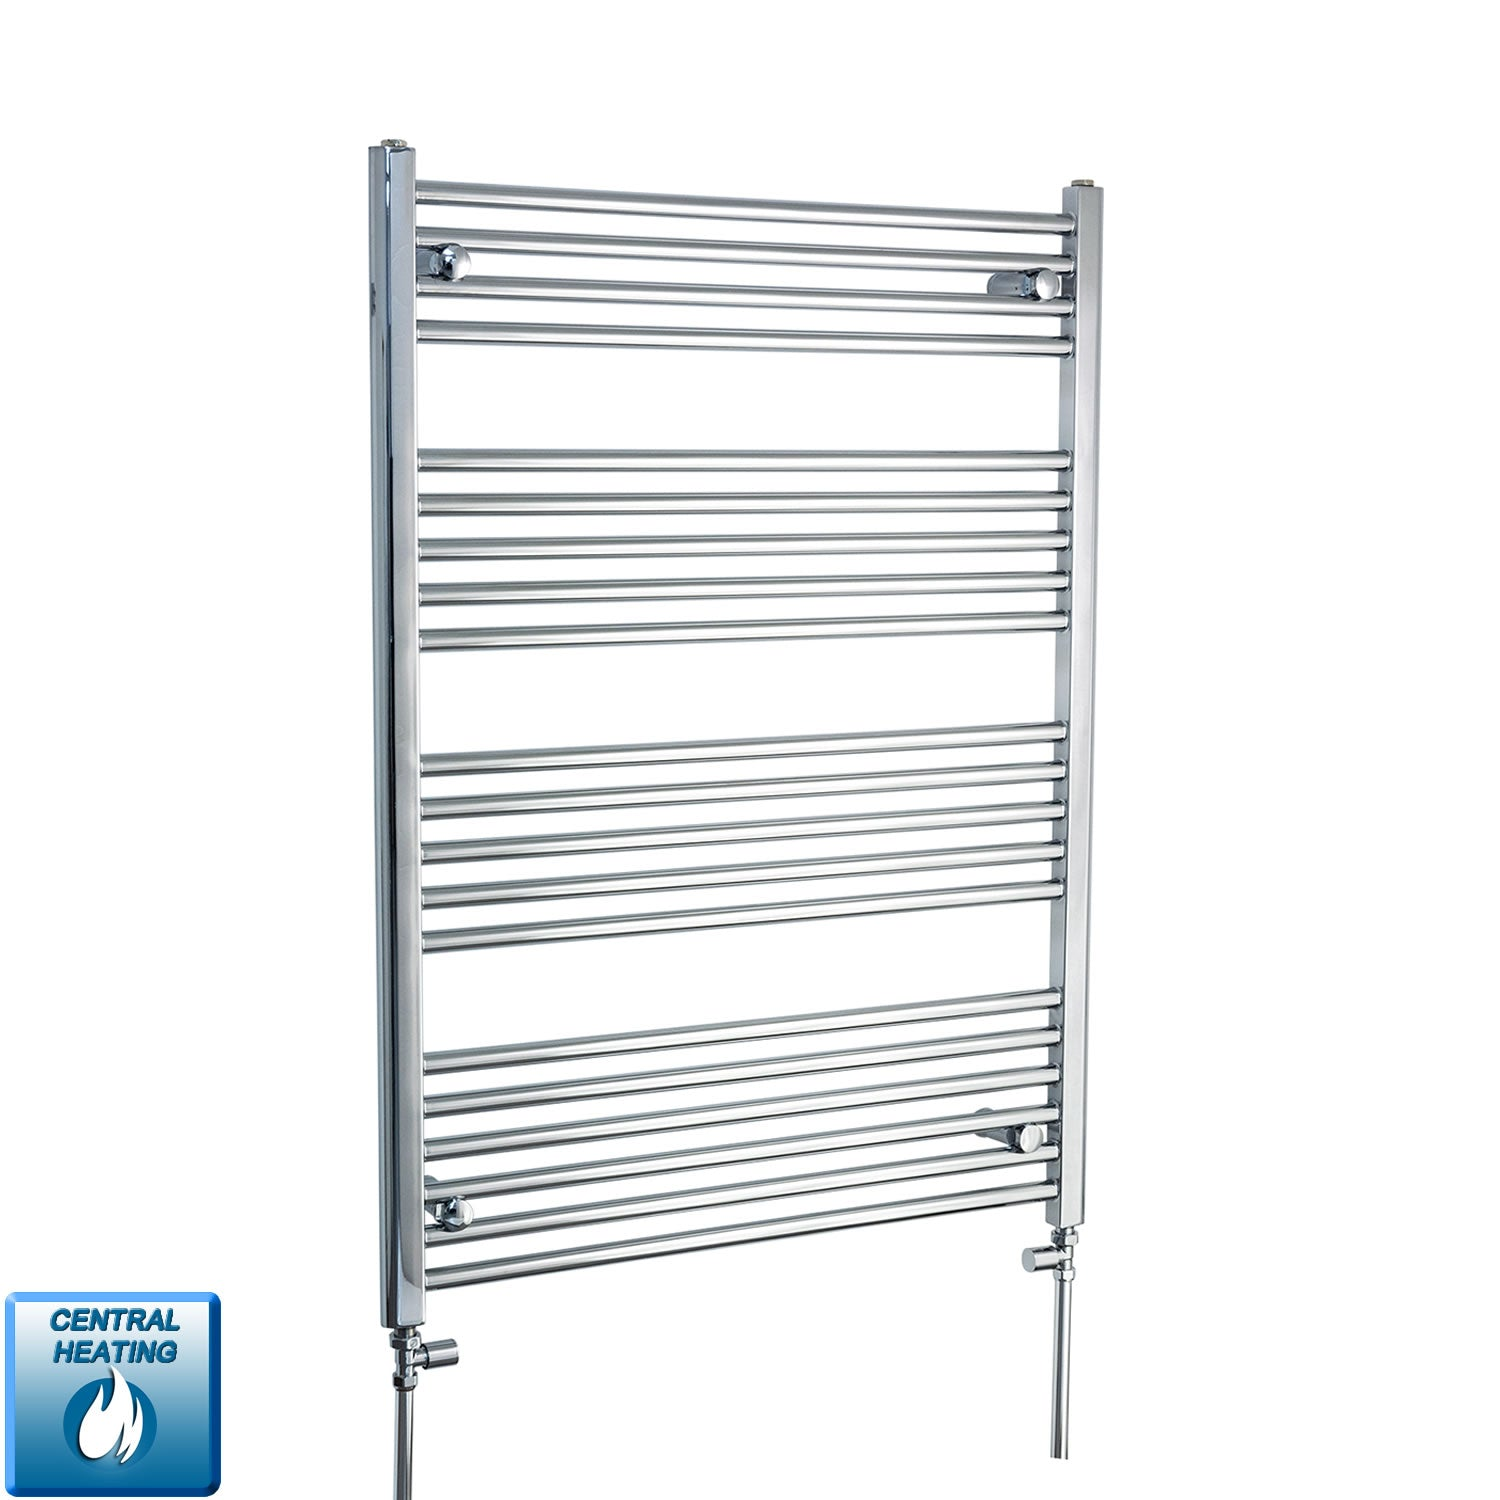 900mm Wide 1100mm High Chrome Towel Rail Radiator With Straight Valve